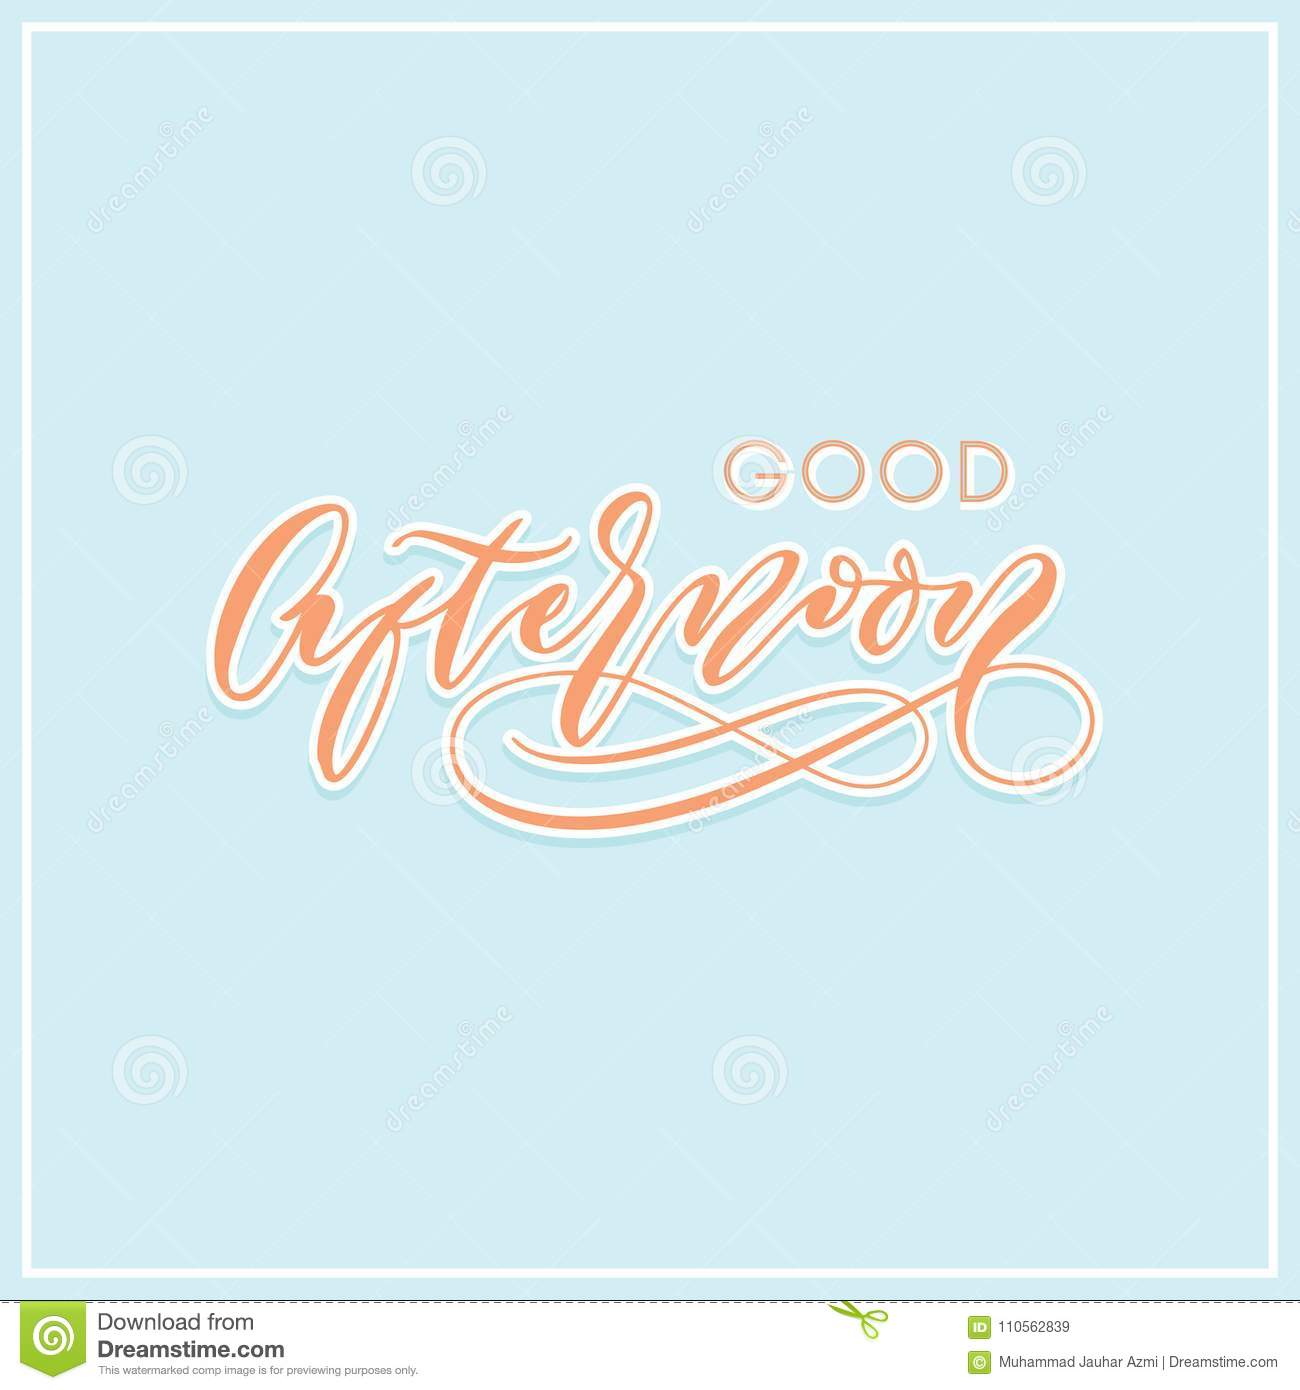 Good Afternoon Modern Calligraphy Hand Lettering Typography Greeting